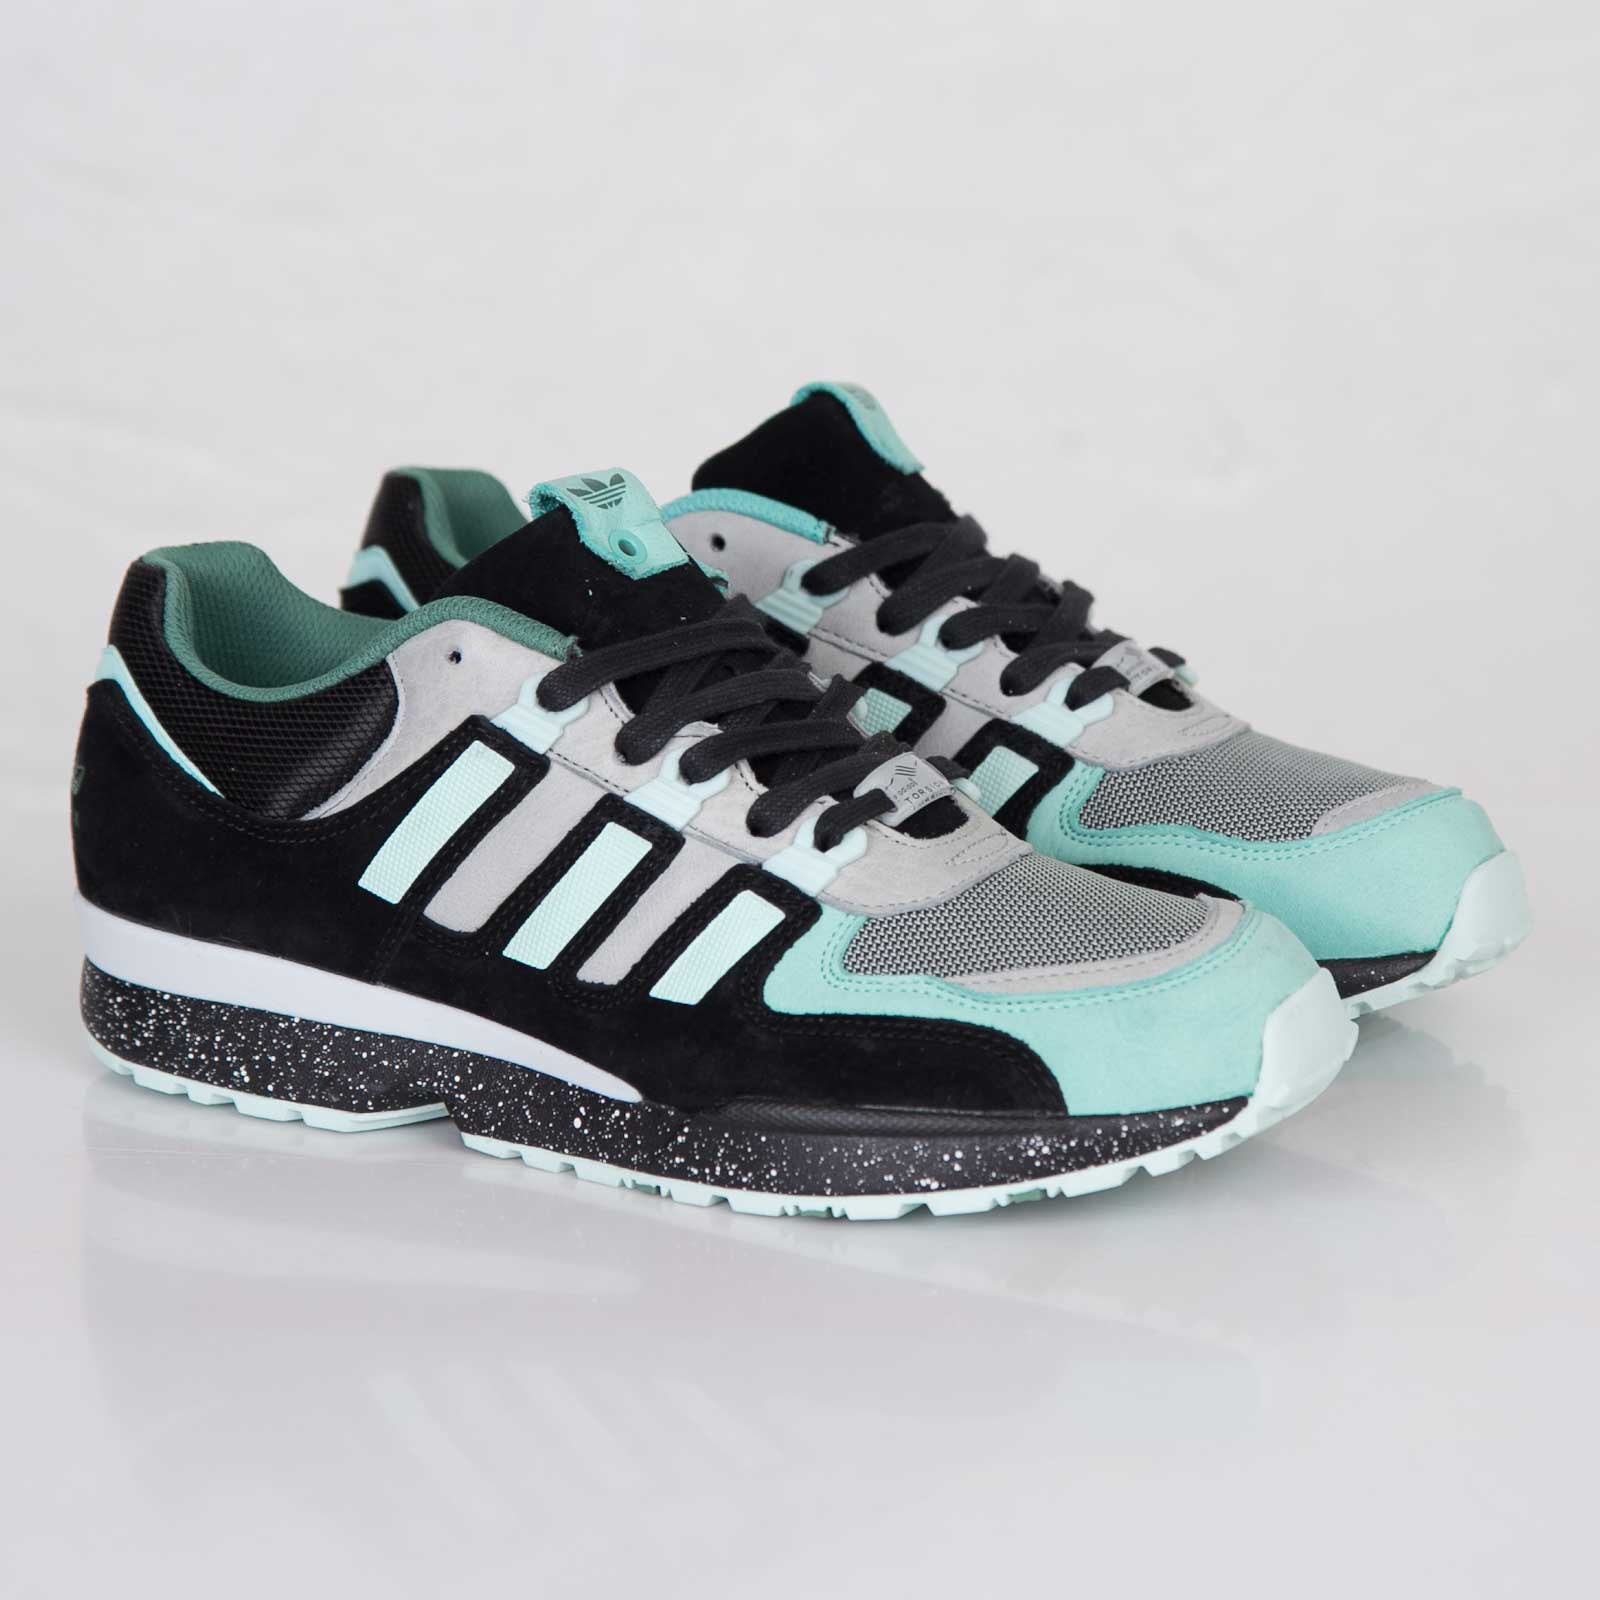 quality design 79f51 28140 adidas Torsion Integral S - DUUO